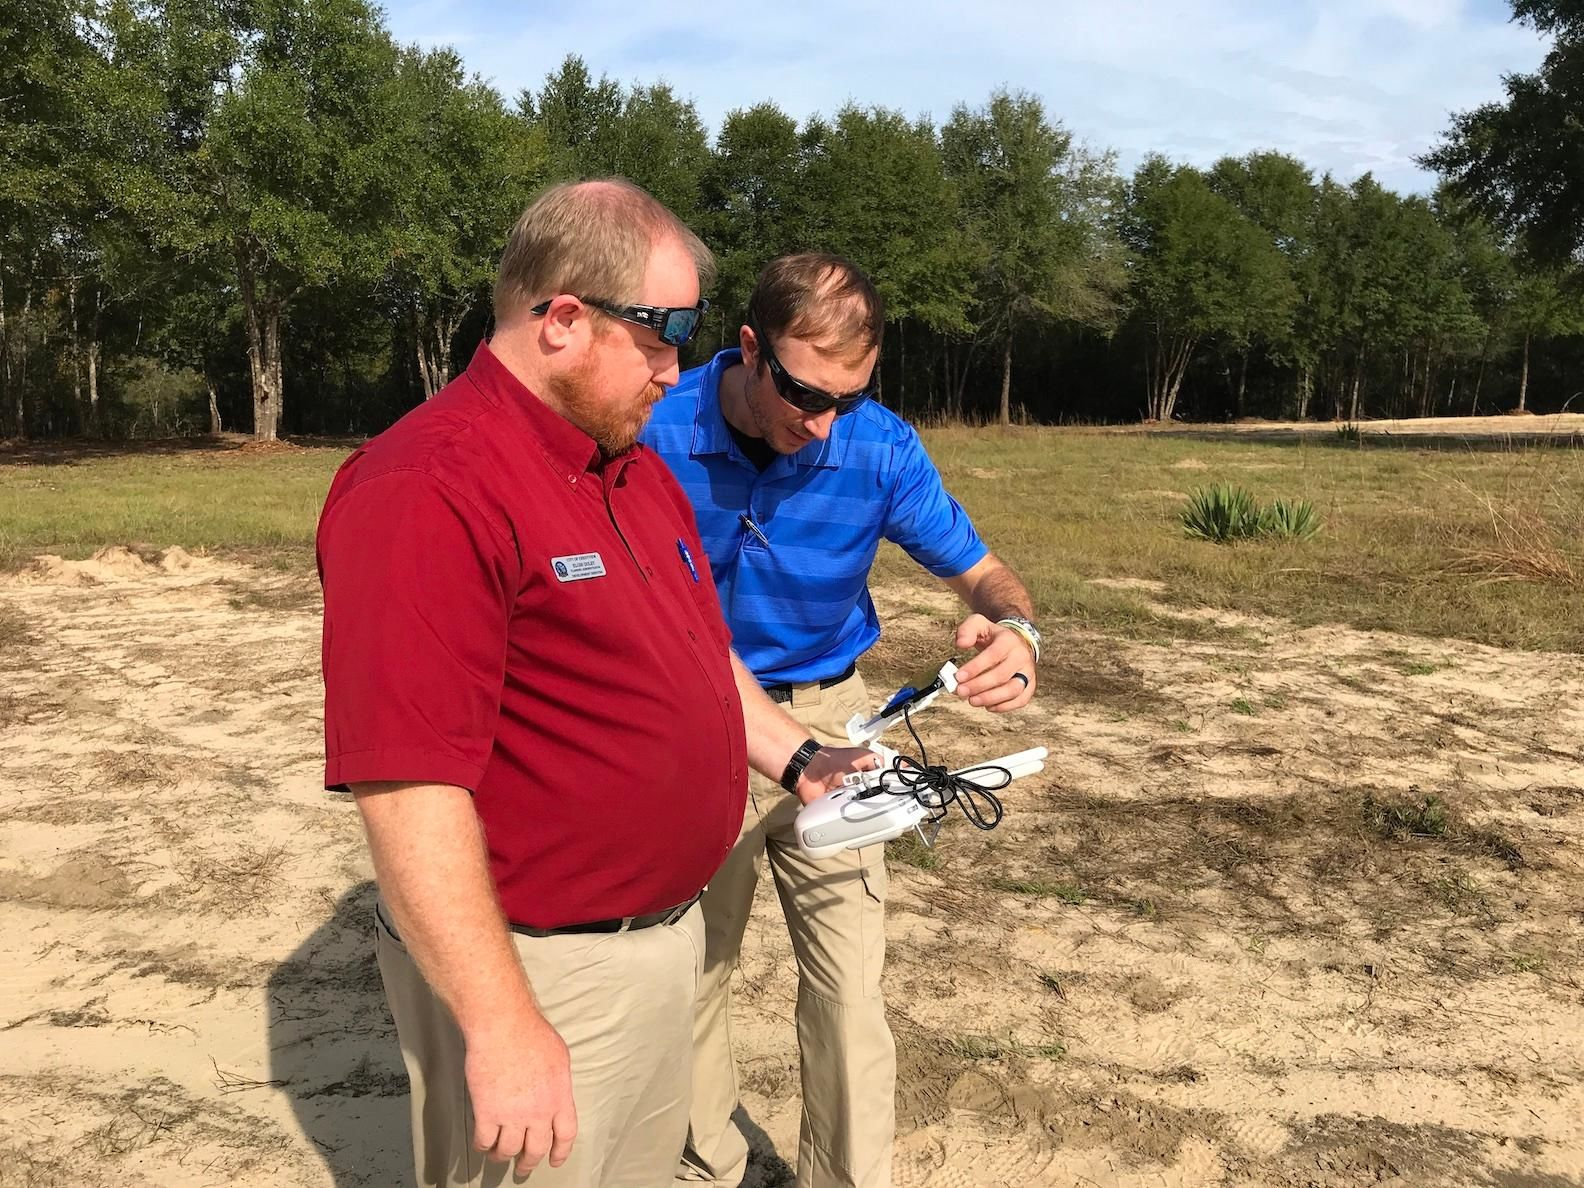 Drone instructor Mario Werth assists student pilot Trae Duly, a Crestview firefighter and Development Services planning administrator, calibrate his control panel before he launched his drone. (Photo: Brian Hughes, Public Information Officer, City of Crestview)